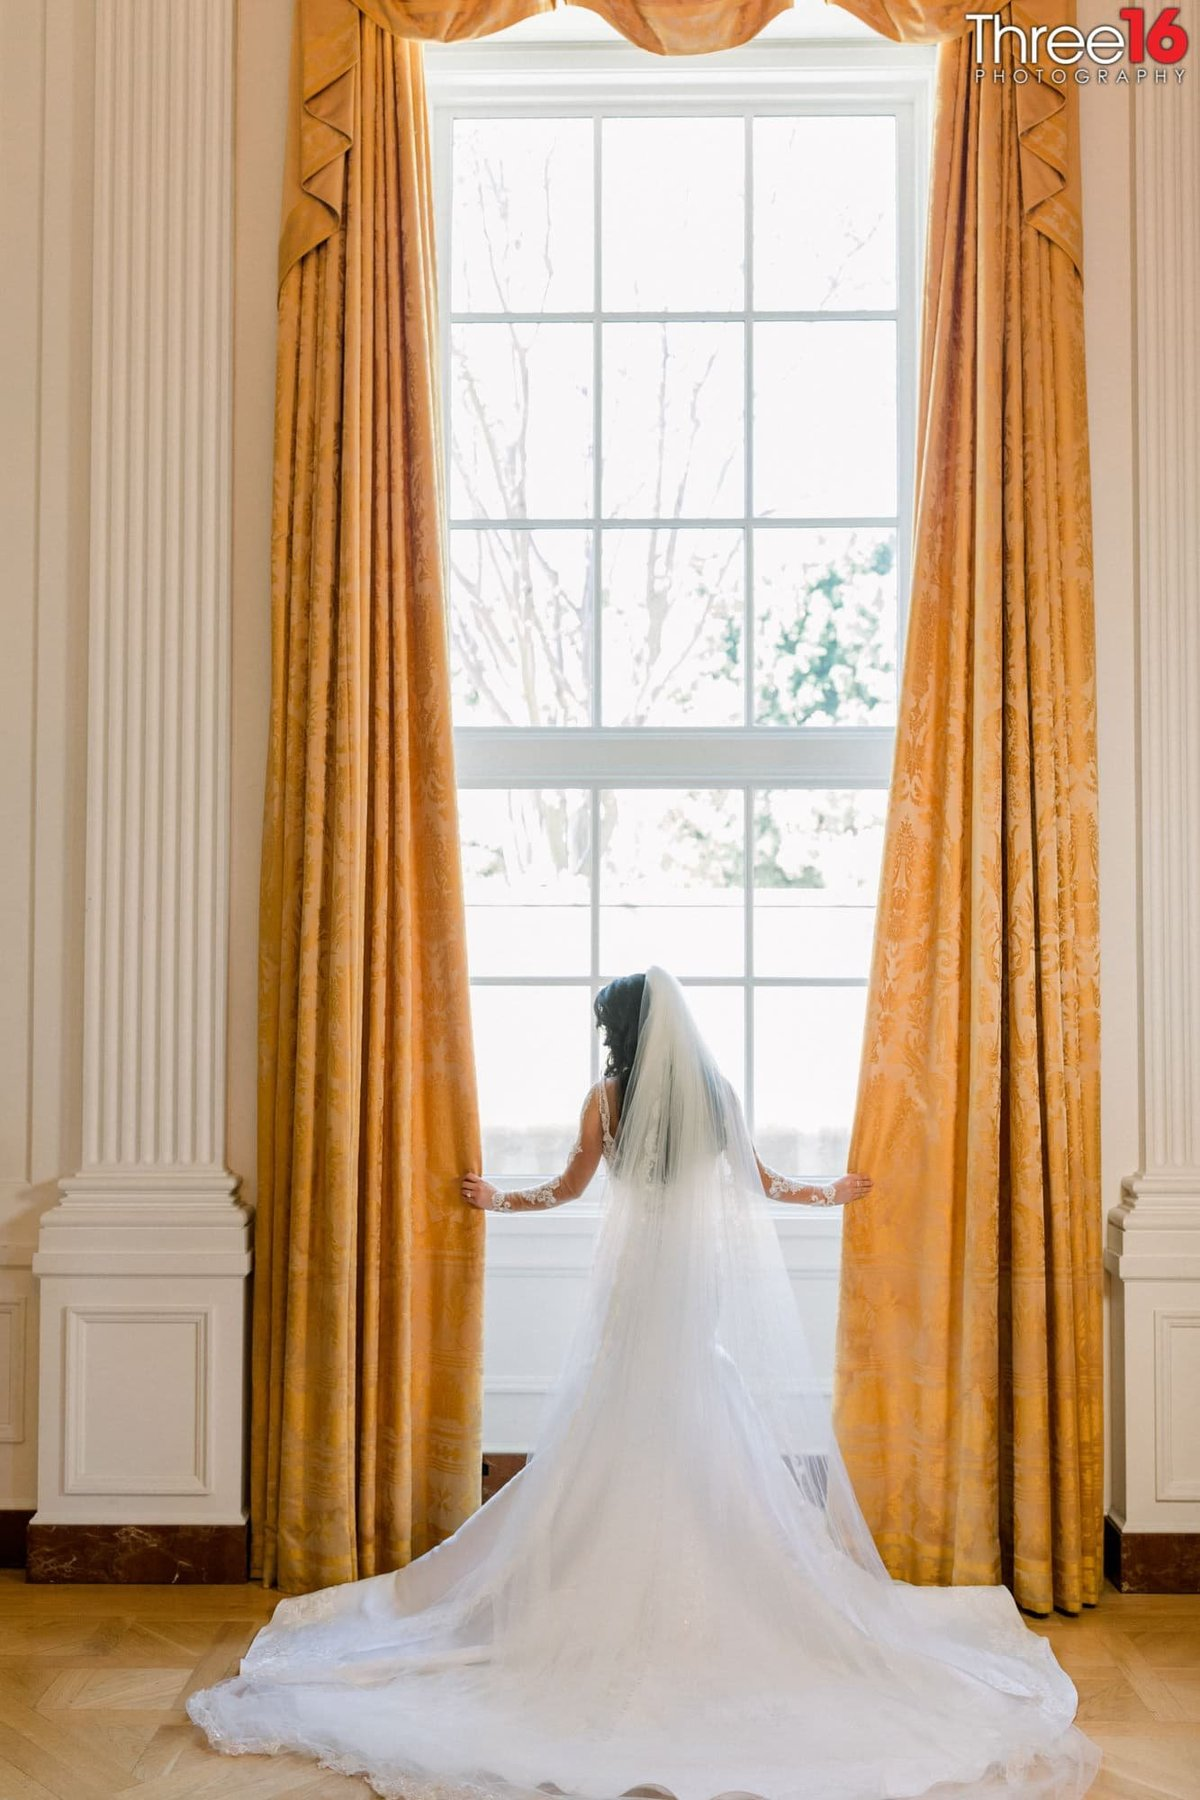 Bride poses in front of a large window with her gown train fanned out